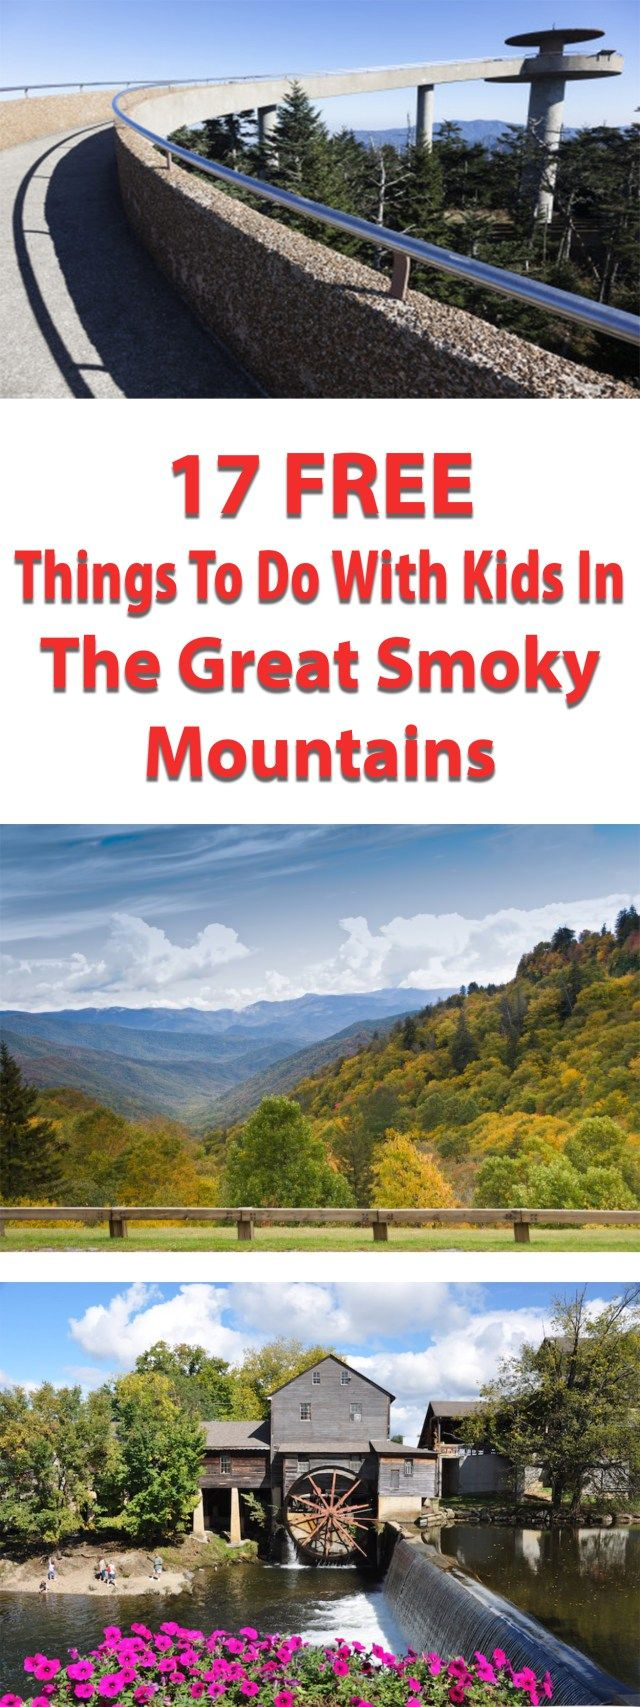 17 Free Things to do With Kids in The Great Smoky Mountains – have-kids-will-travel.com